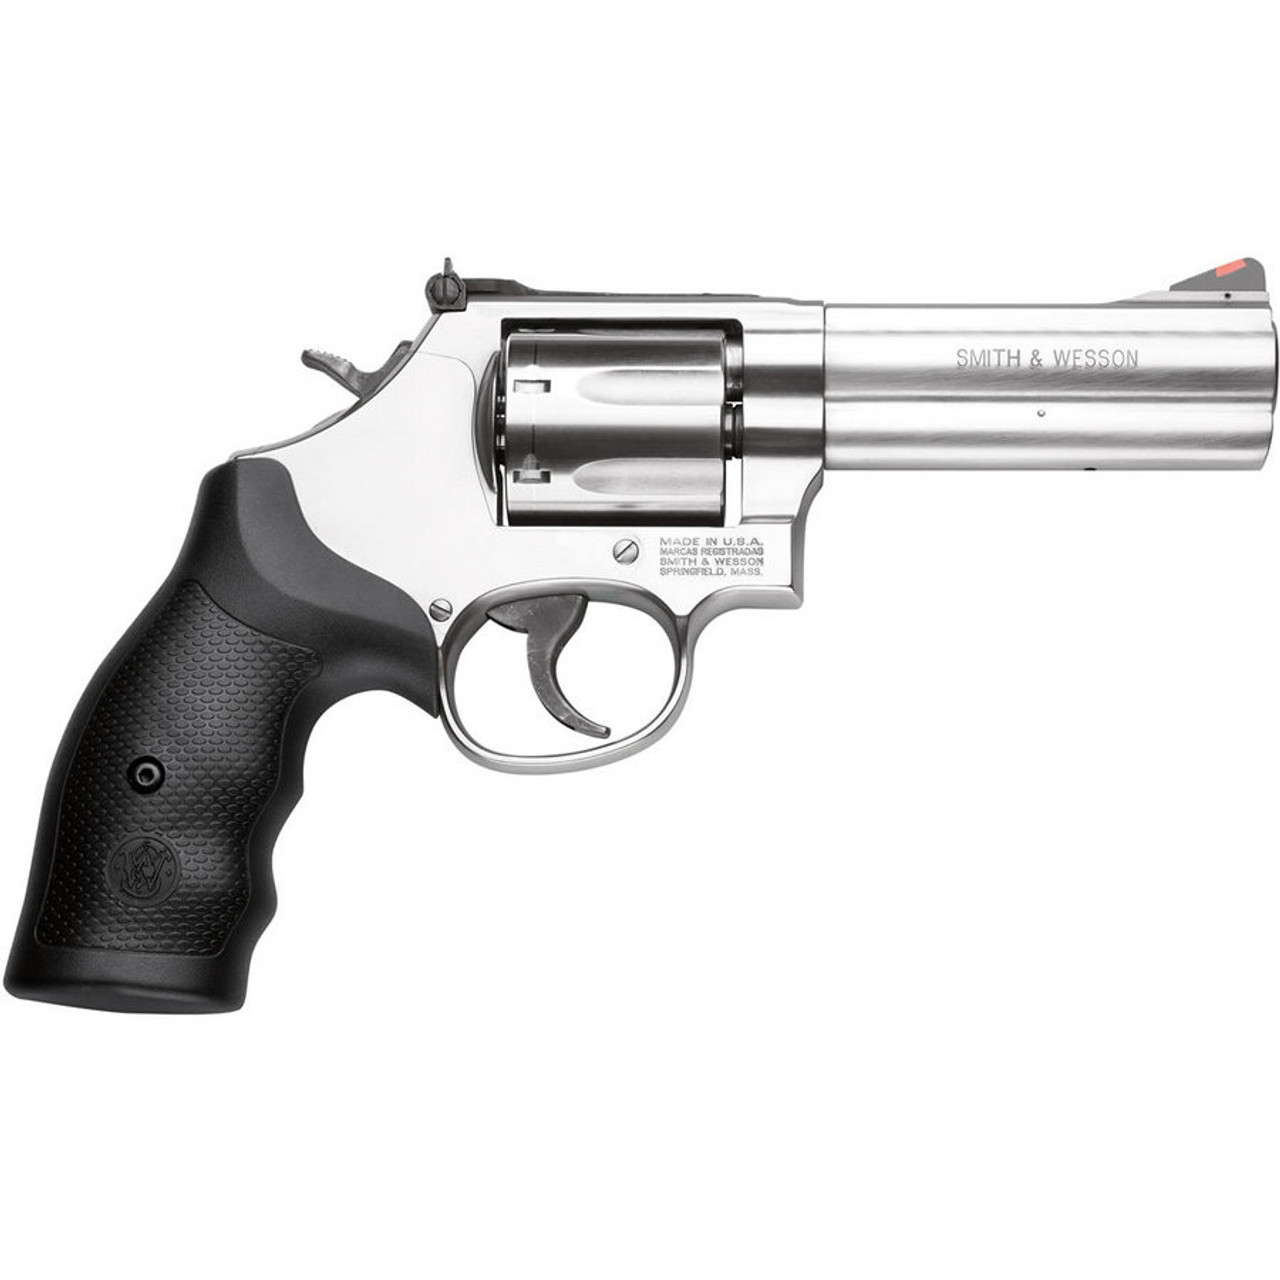 Smith & Wesson Model 686 Plus 357 Magnum 7-Shot/4-inch Revolver